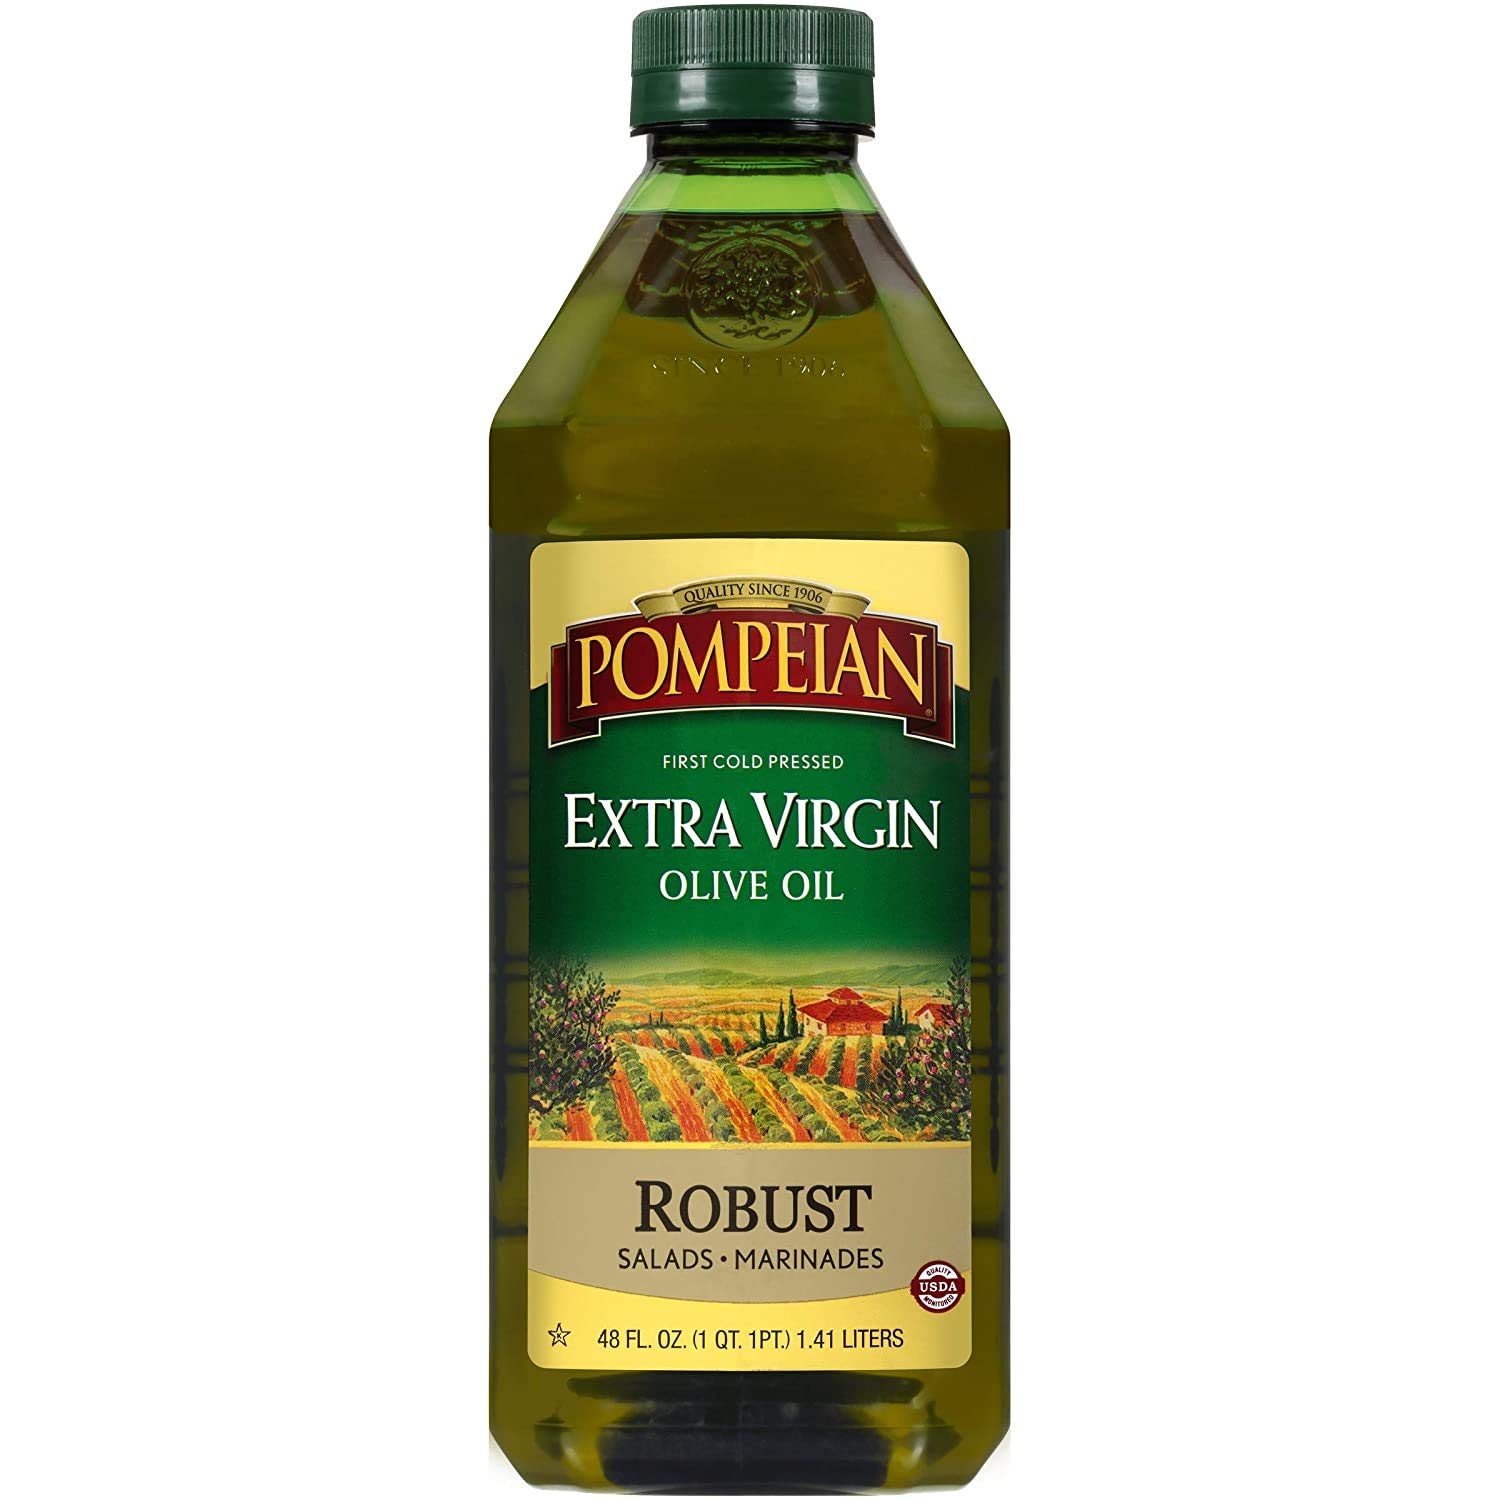 Pompeian Robust Extra Virgin Olive Oil, First Cold Pressed, Full-Bodied Flavor, Perfect for Salad Dressings & Marinades, 48 FL. OZ.